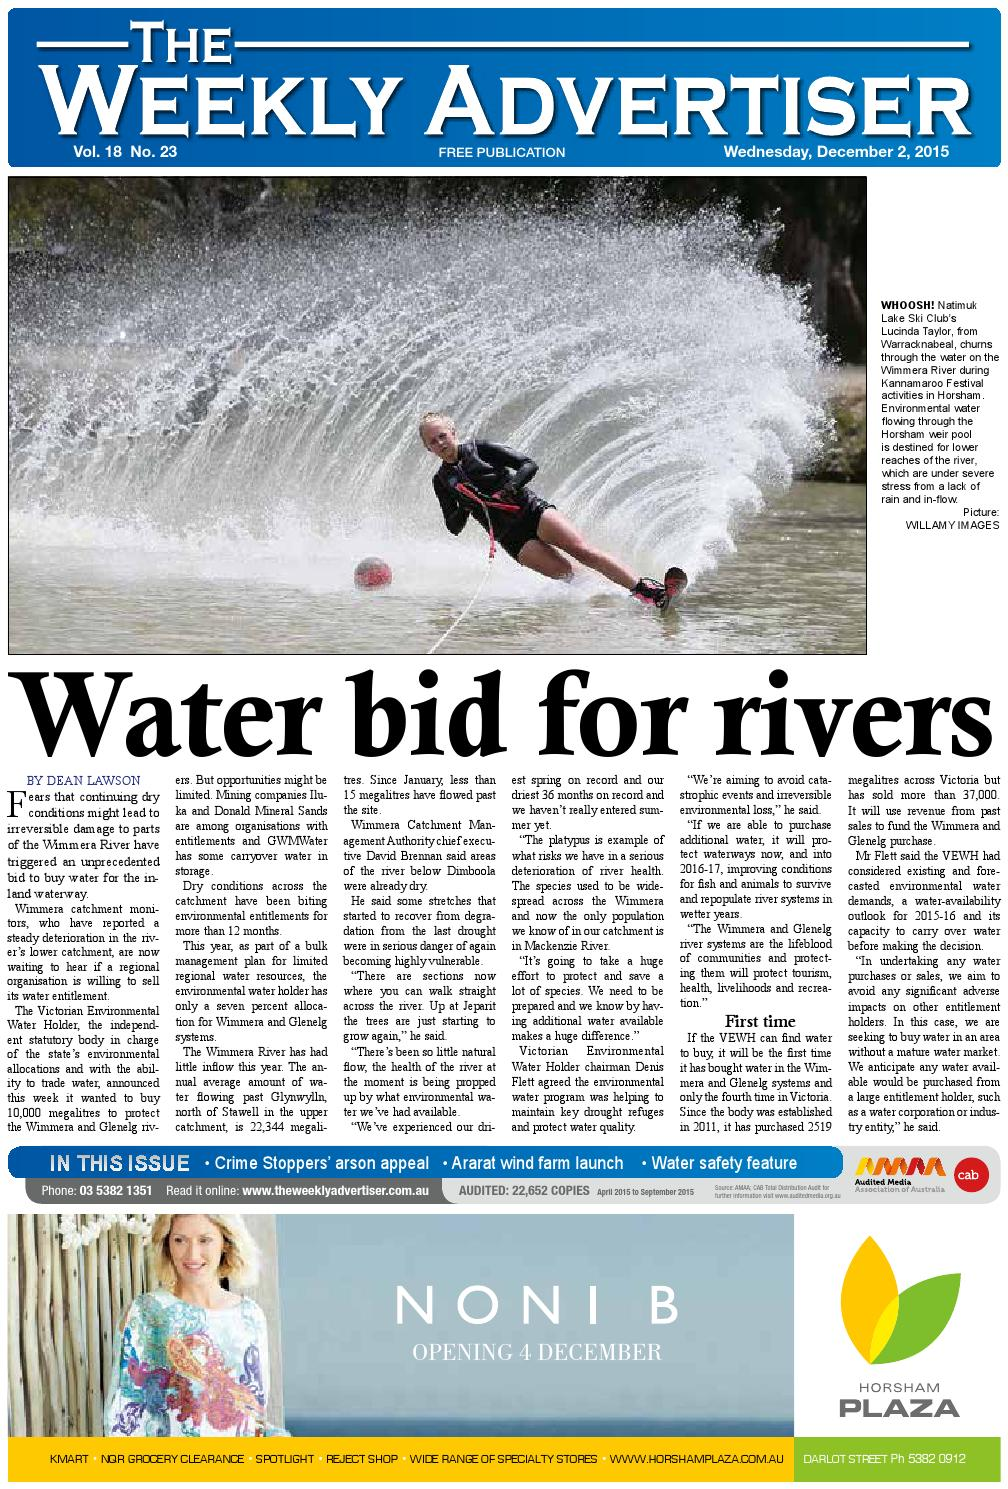 The Weekly Advertiser Wednesday December 2 2015 By The Weekly